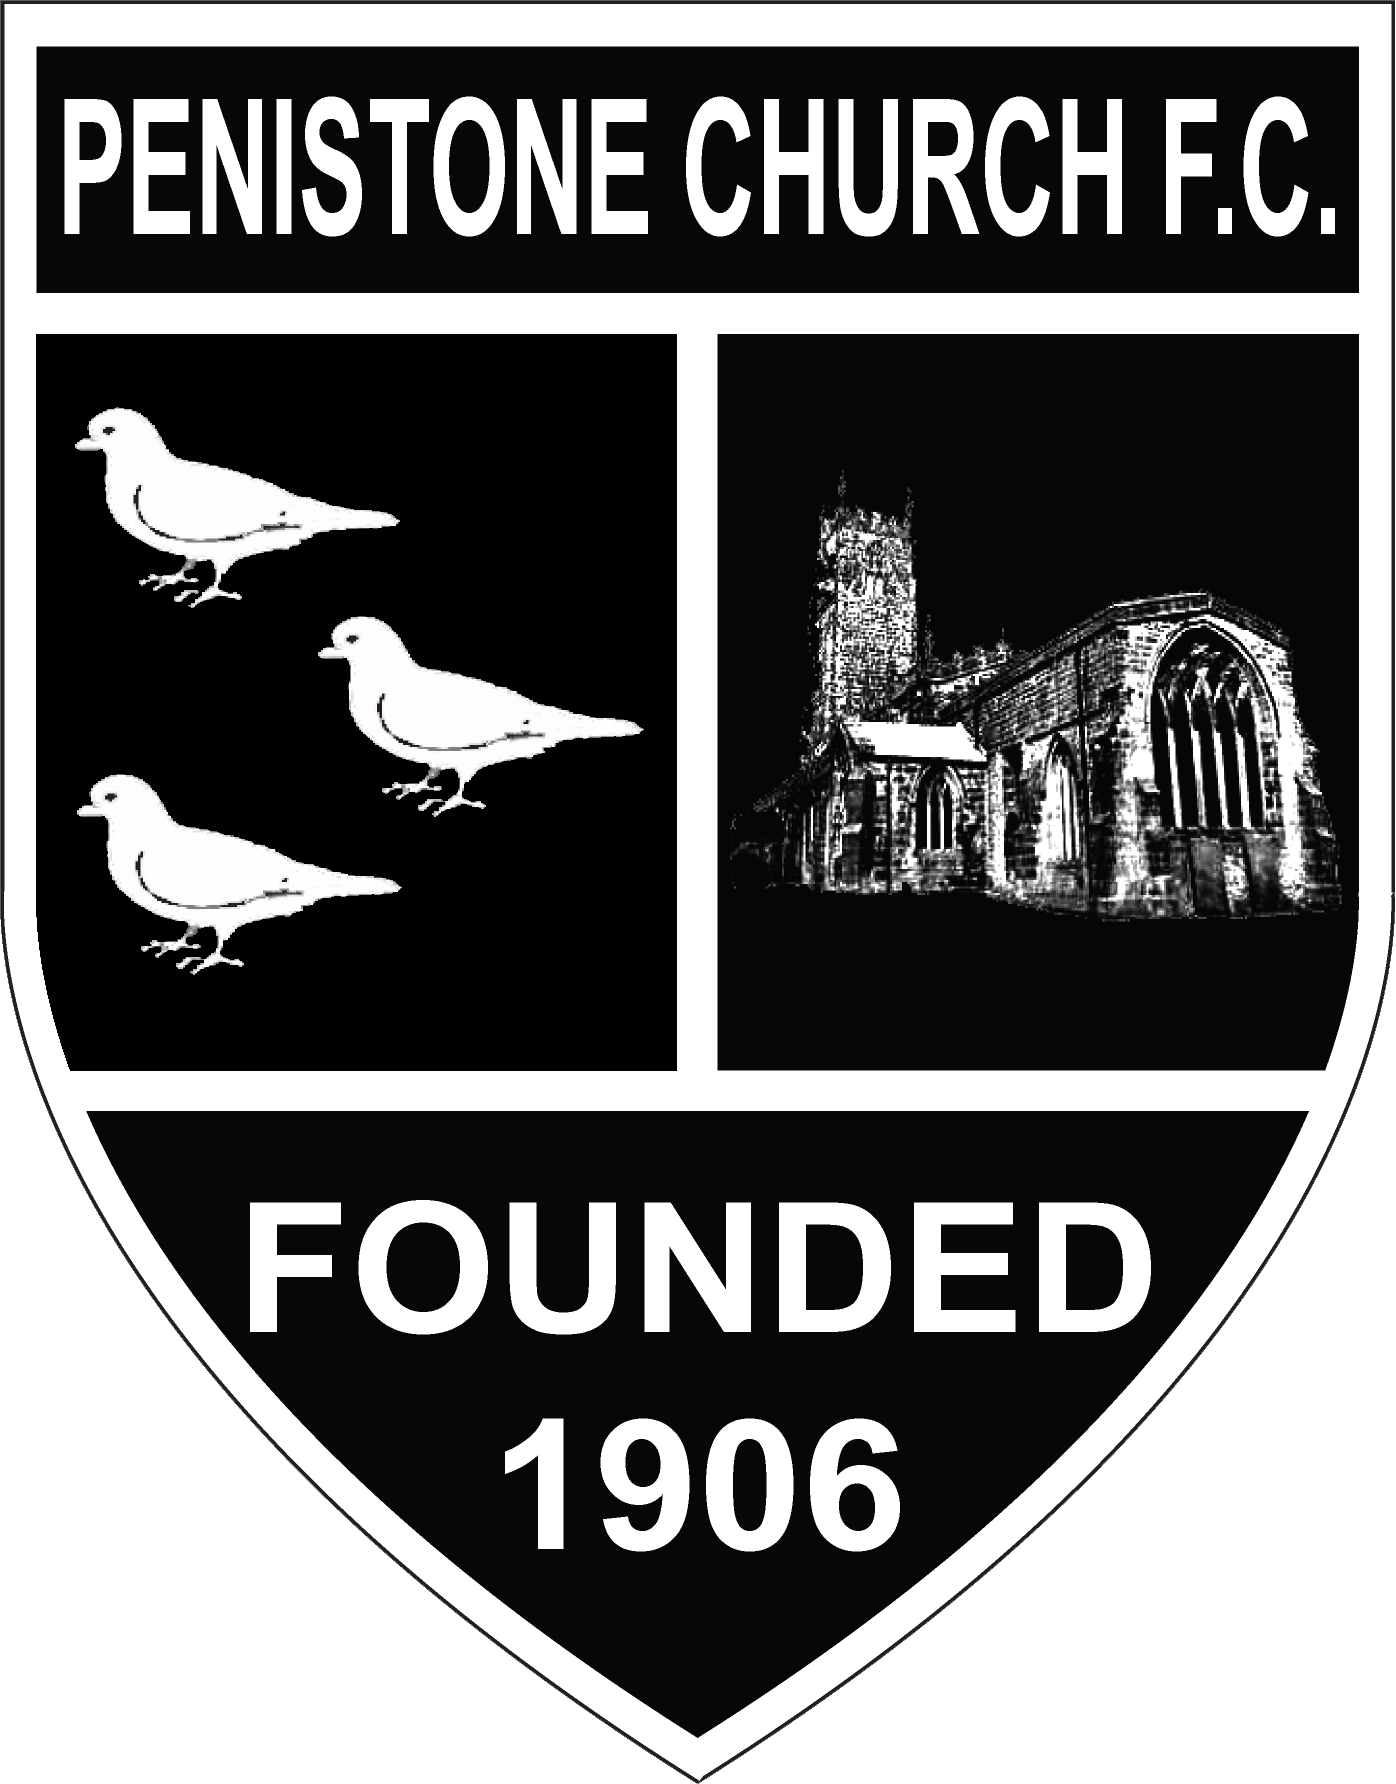 Penistone Church Football Club